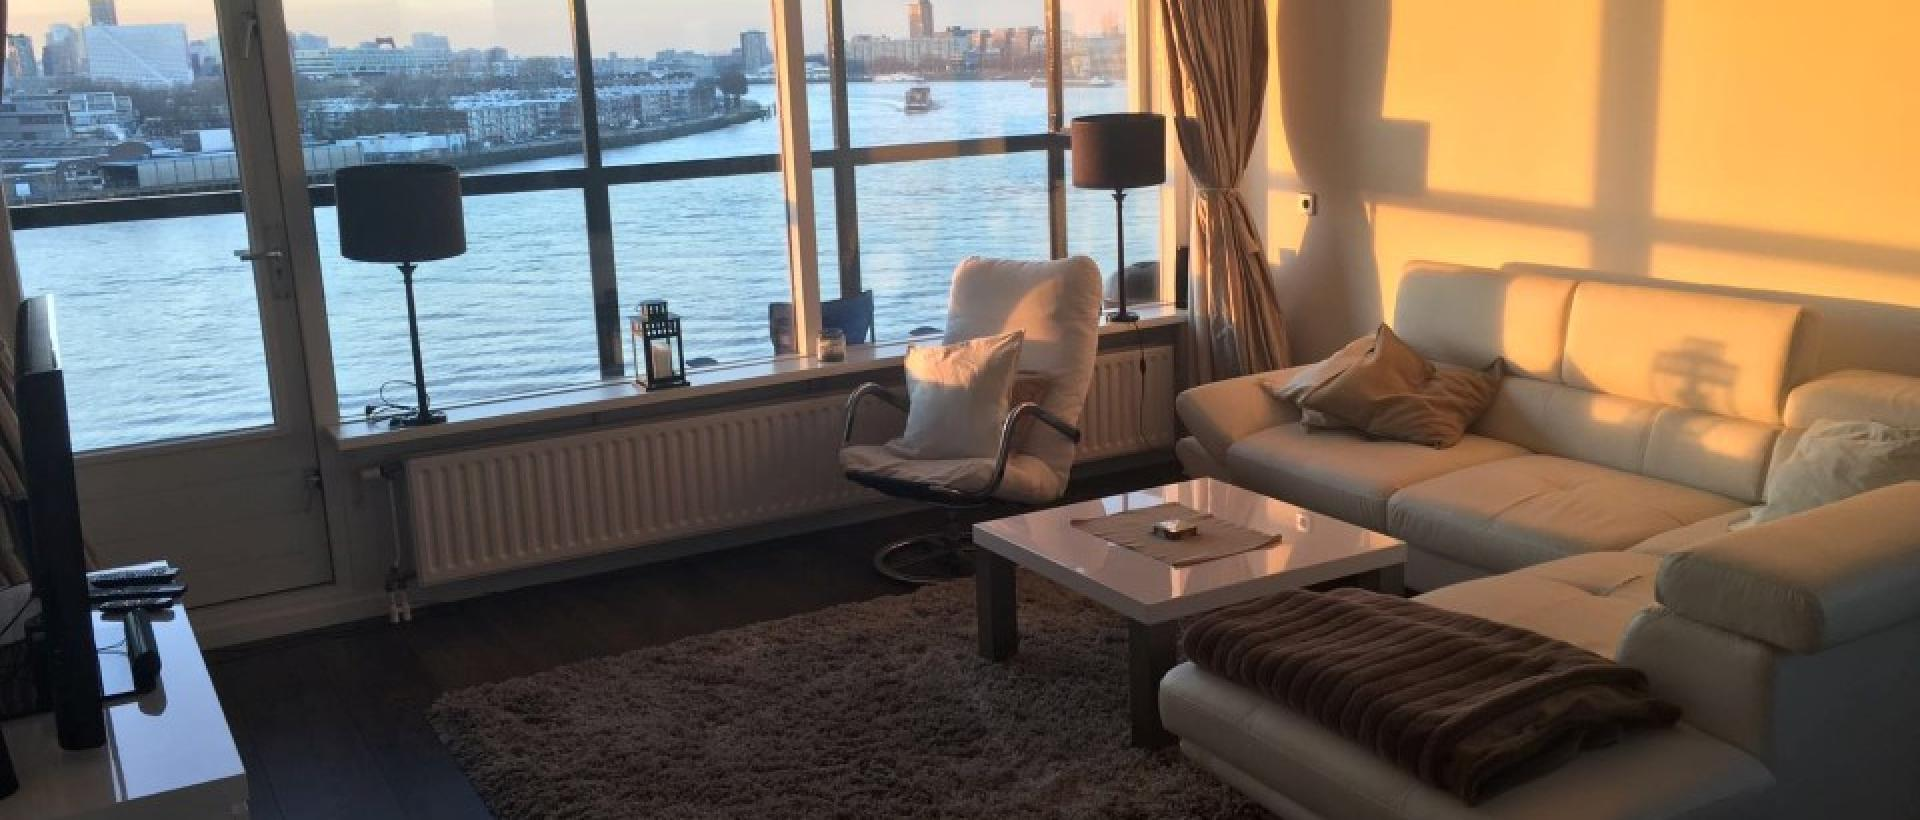 Buitenbassinweg Rotterdam Kralingen Zuid Holland Rentals Luxury Furnished Apartments And Houses For Rent